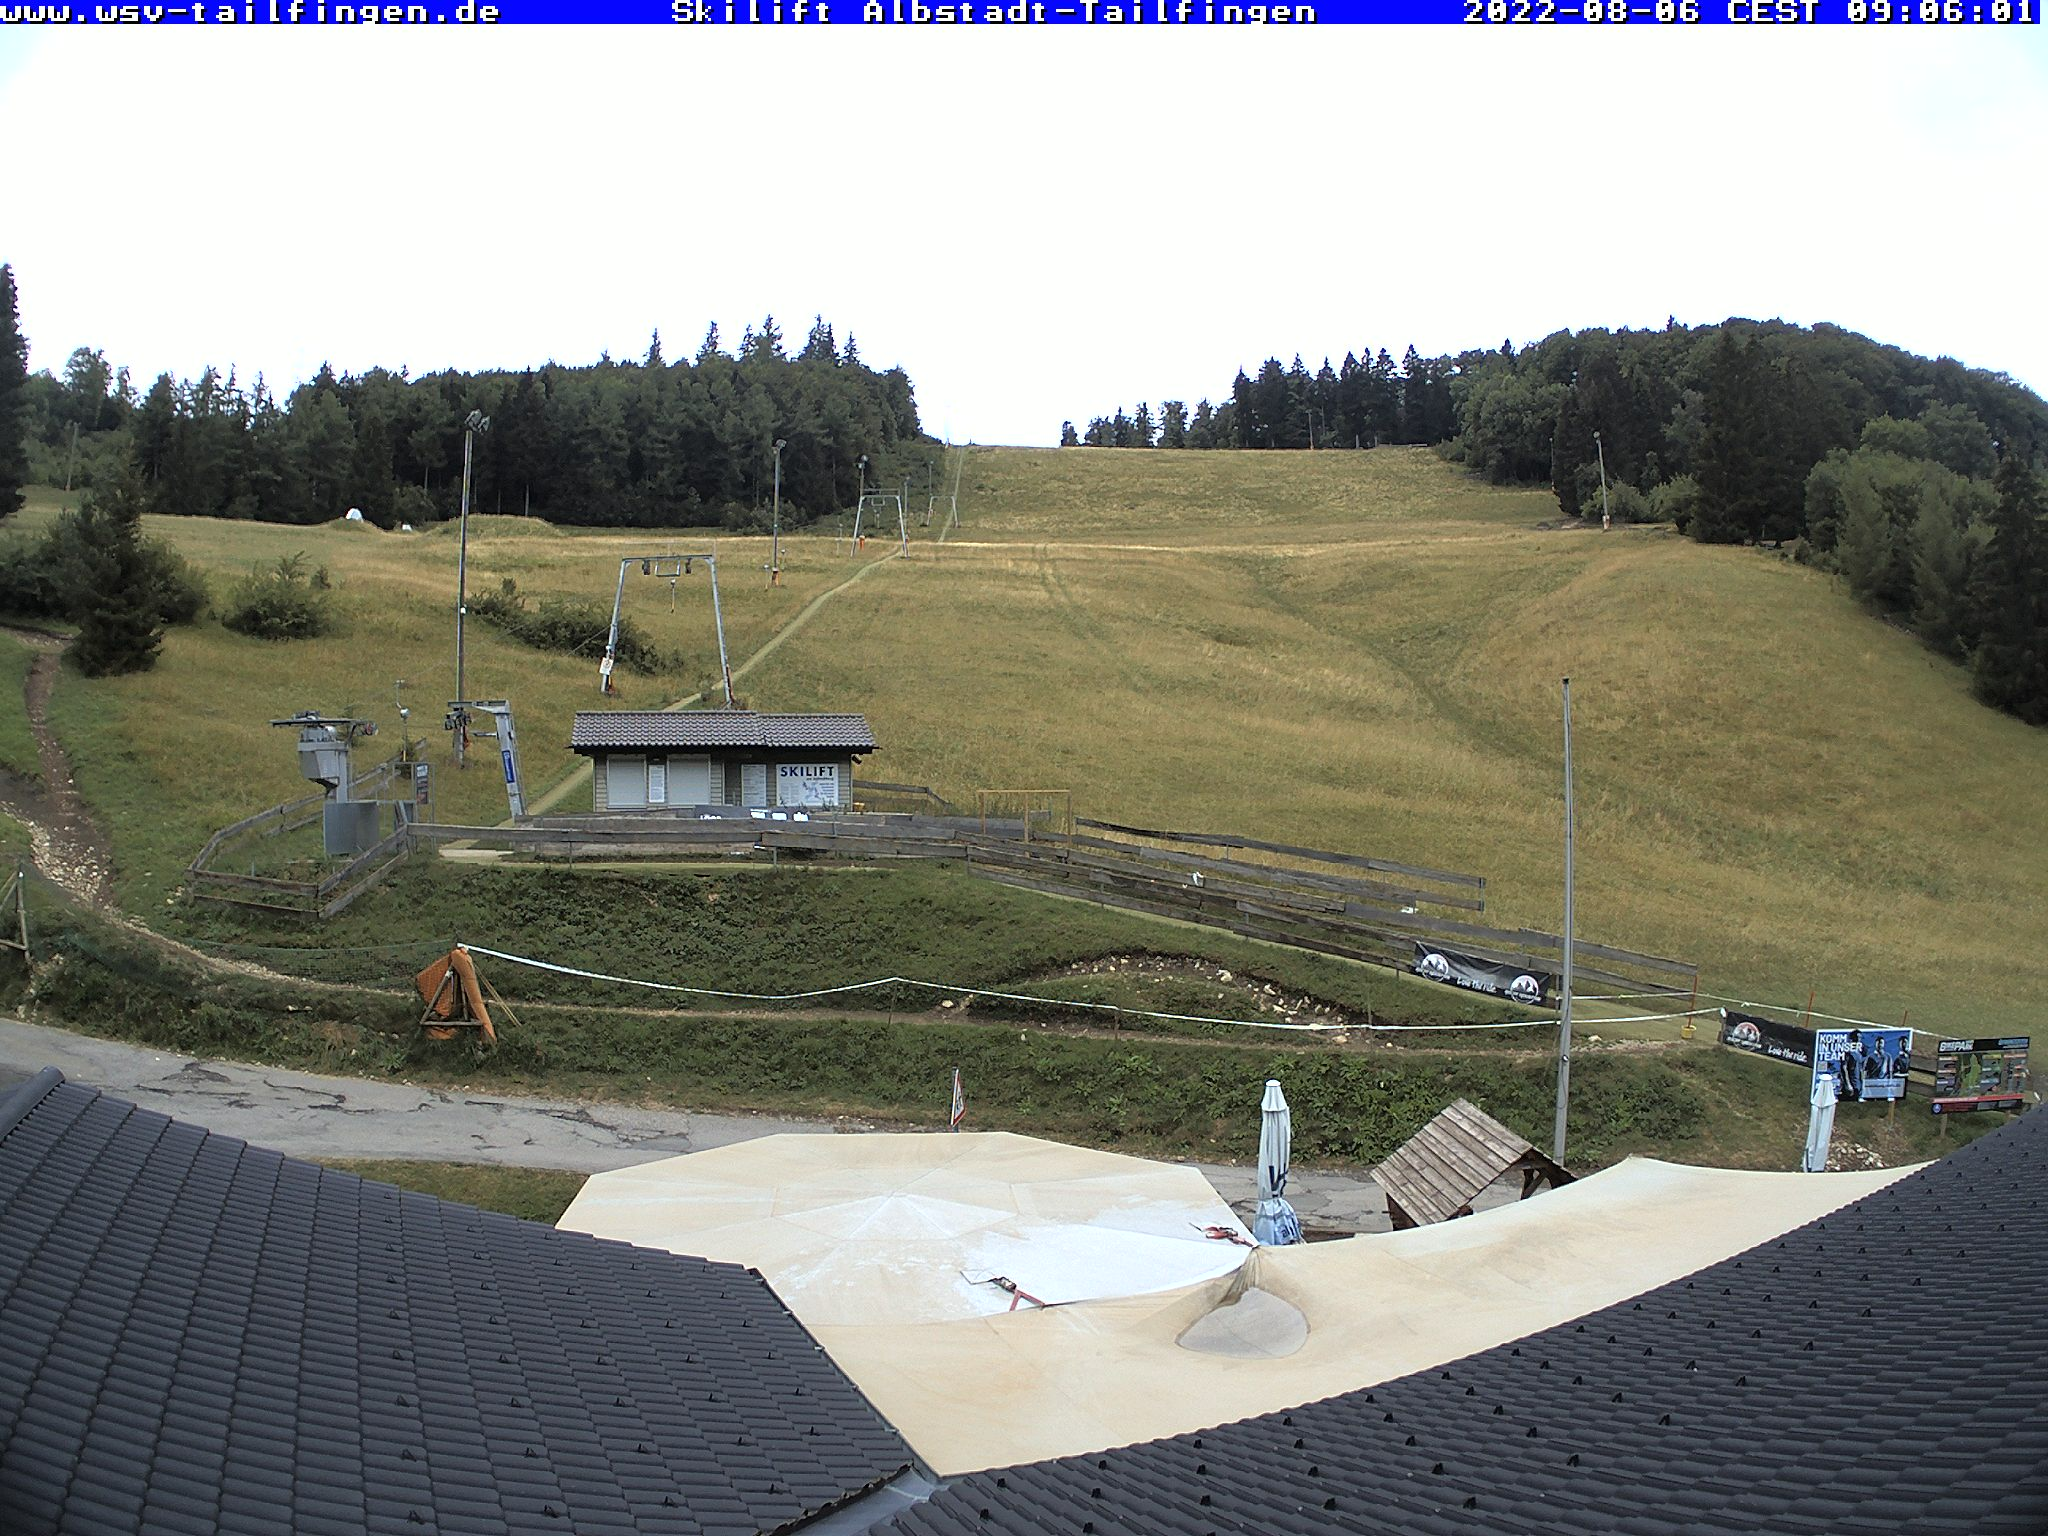 Webcam des Wintersportverein Tailfingen